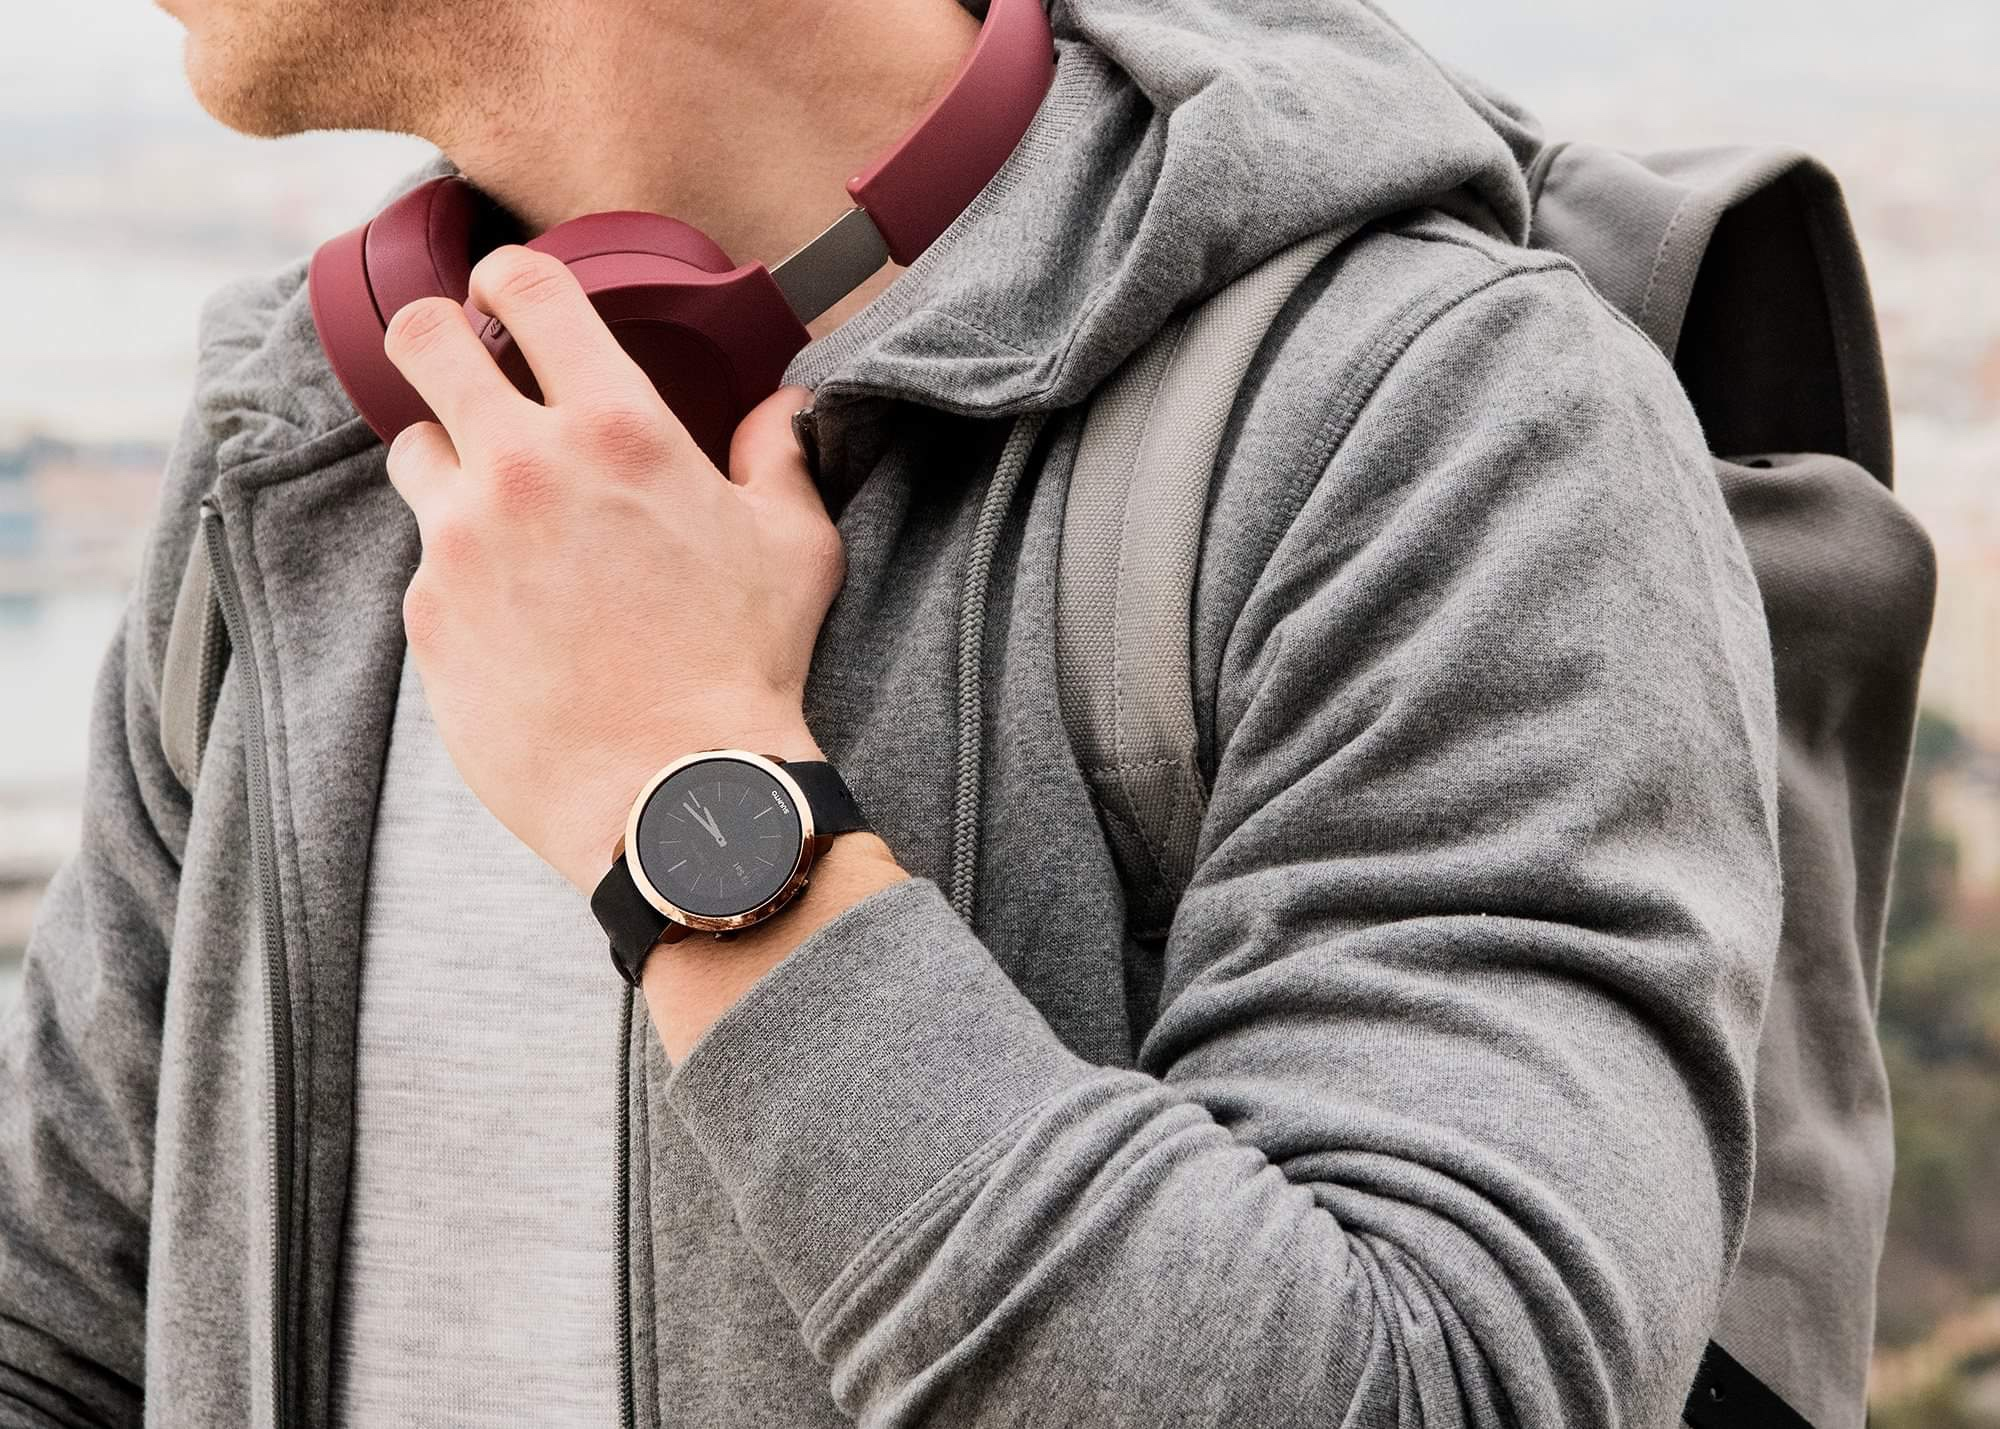 Man in a grey hoodie looks to the left with a black and gold smartwatch on his left wrist